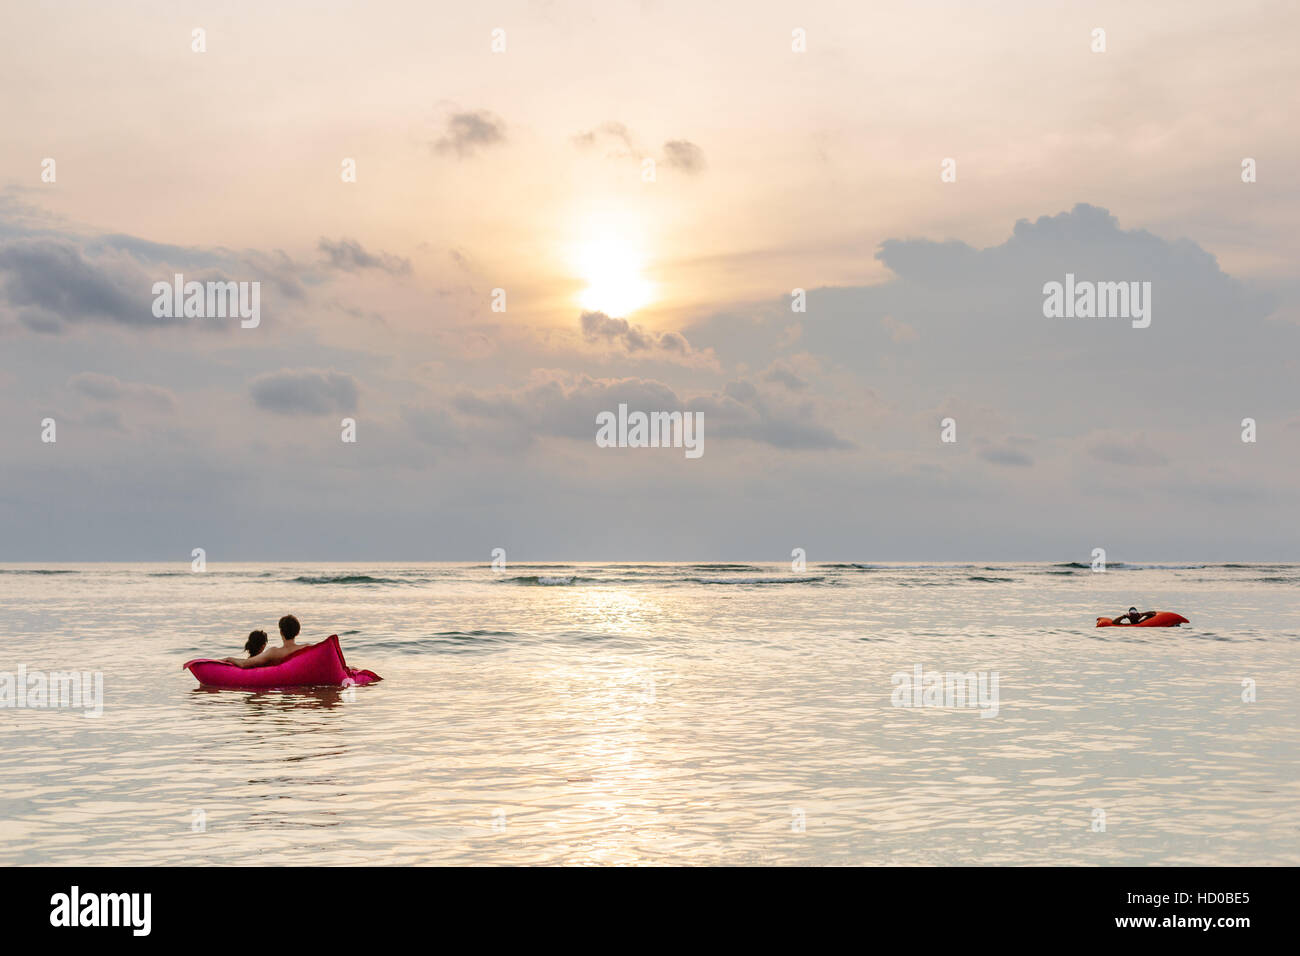 a couple sit on a red floating bean bag in the sea watching the sunset - Stock Image